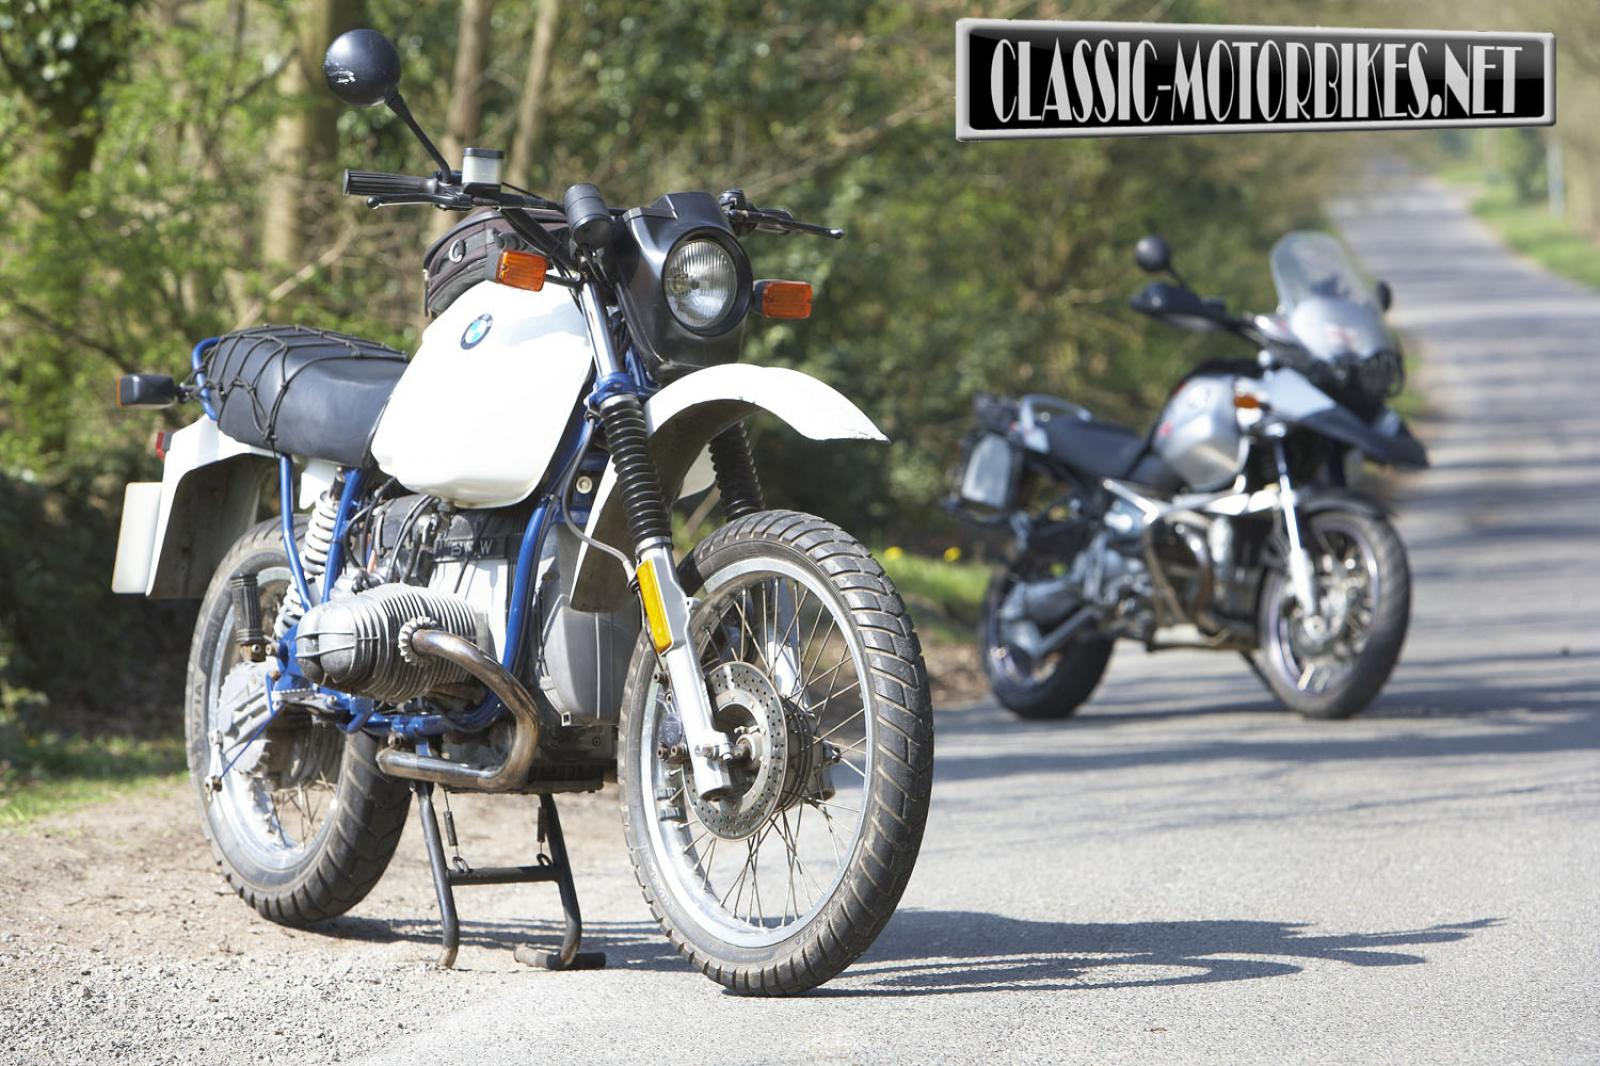 BMW R65 (reduced effect) 1991 images #77451